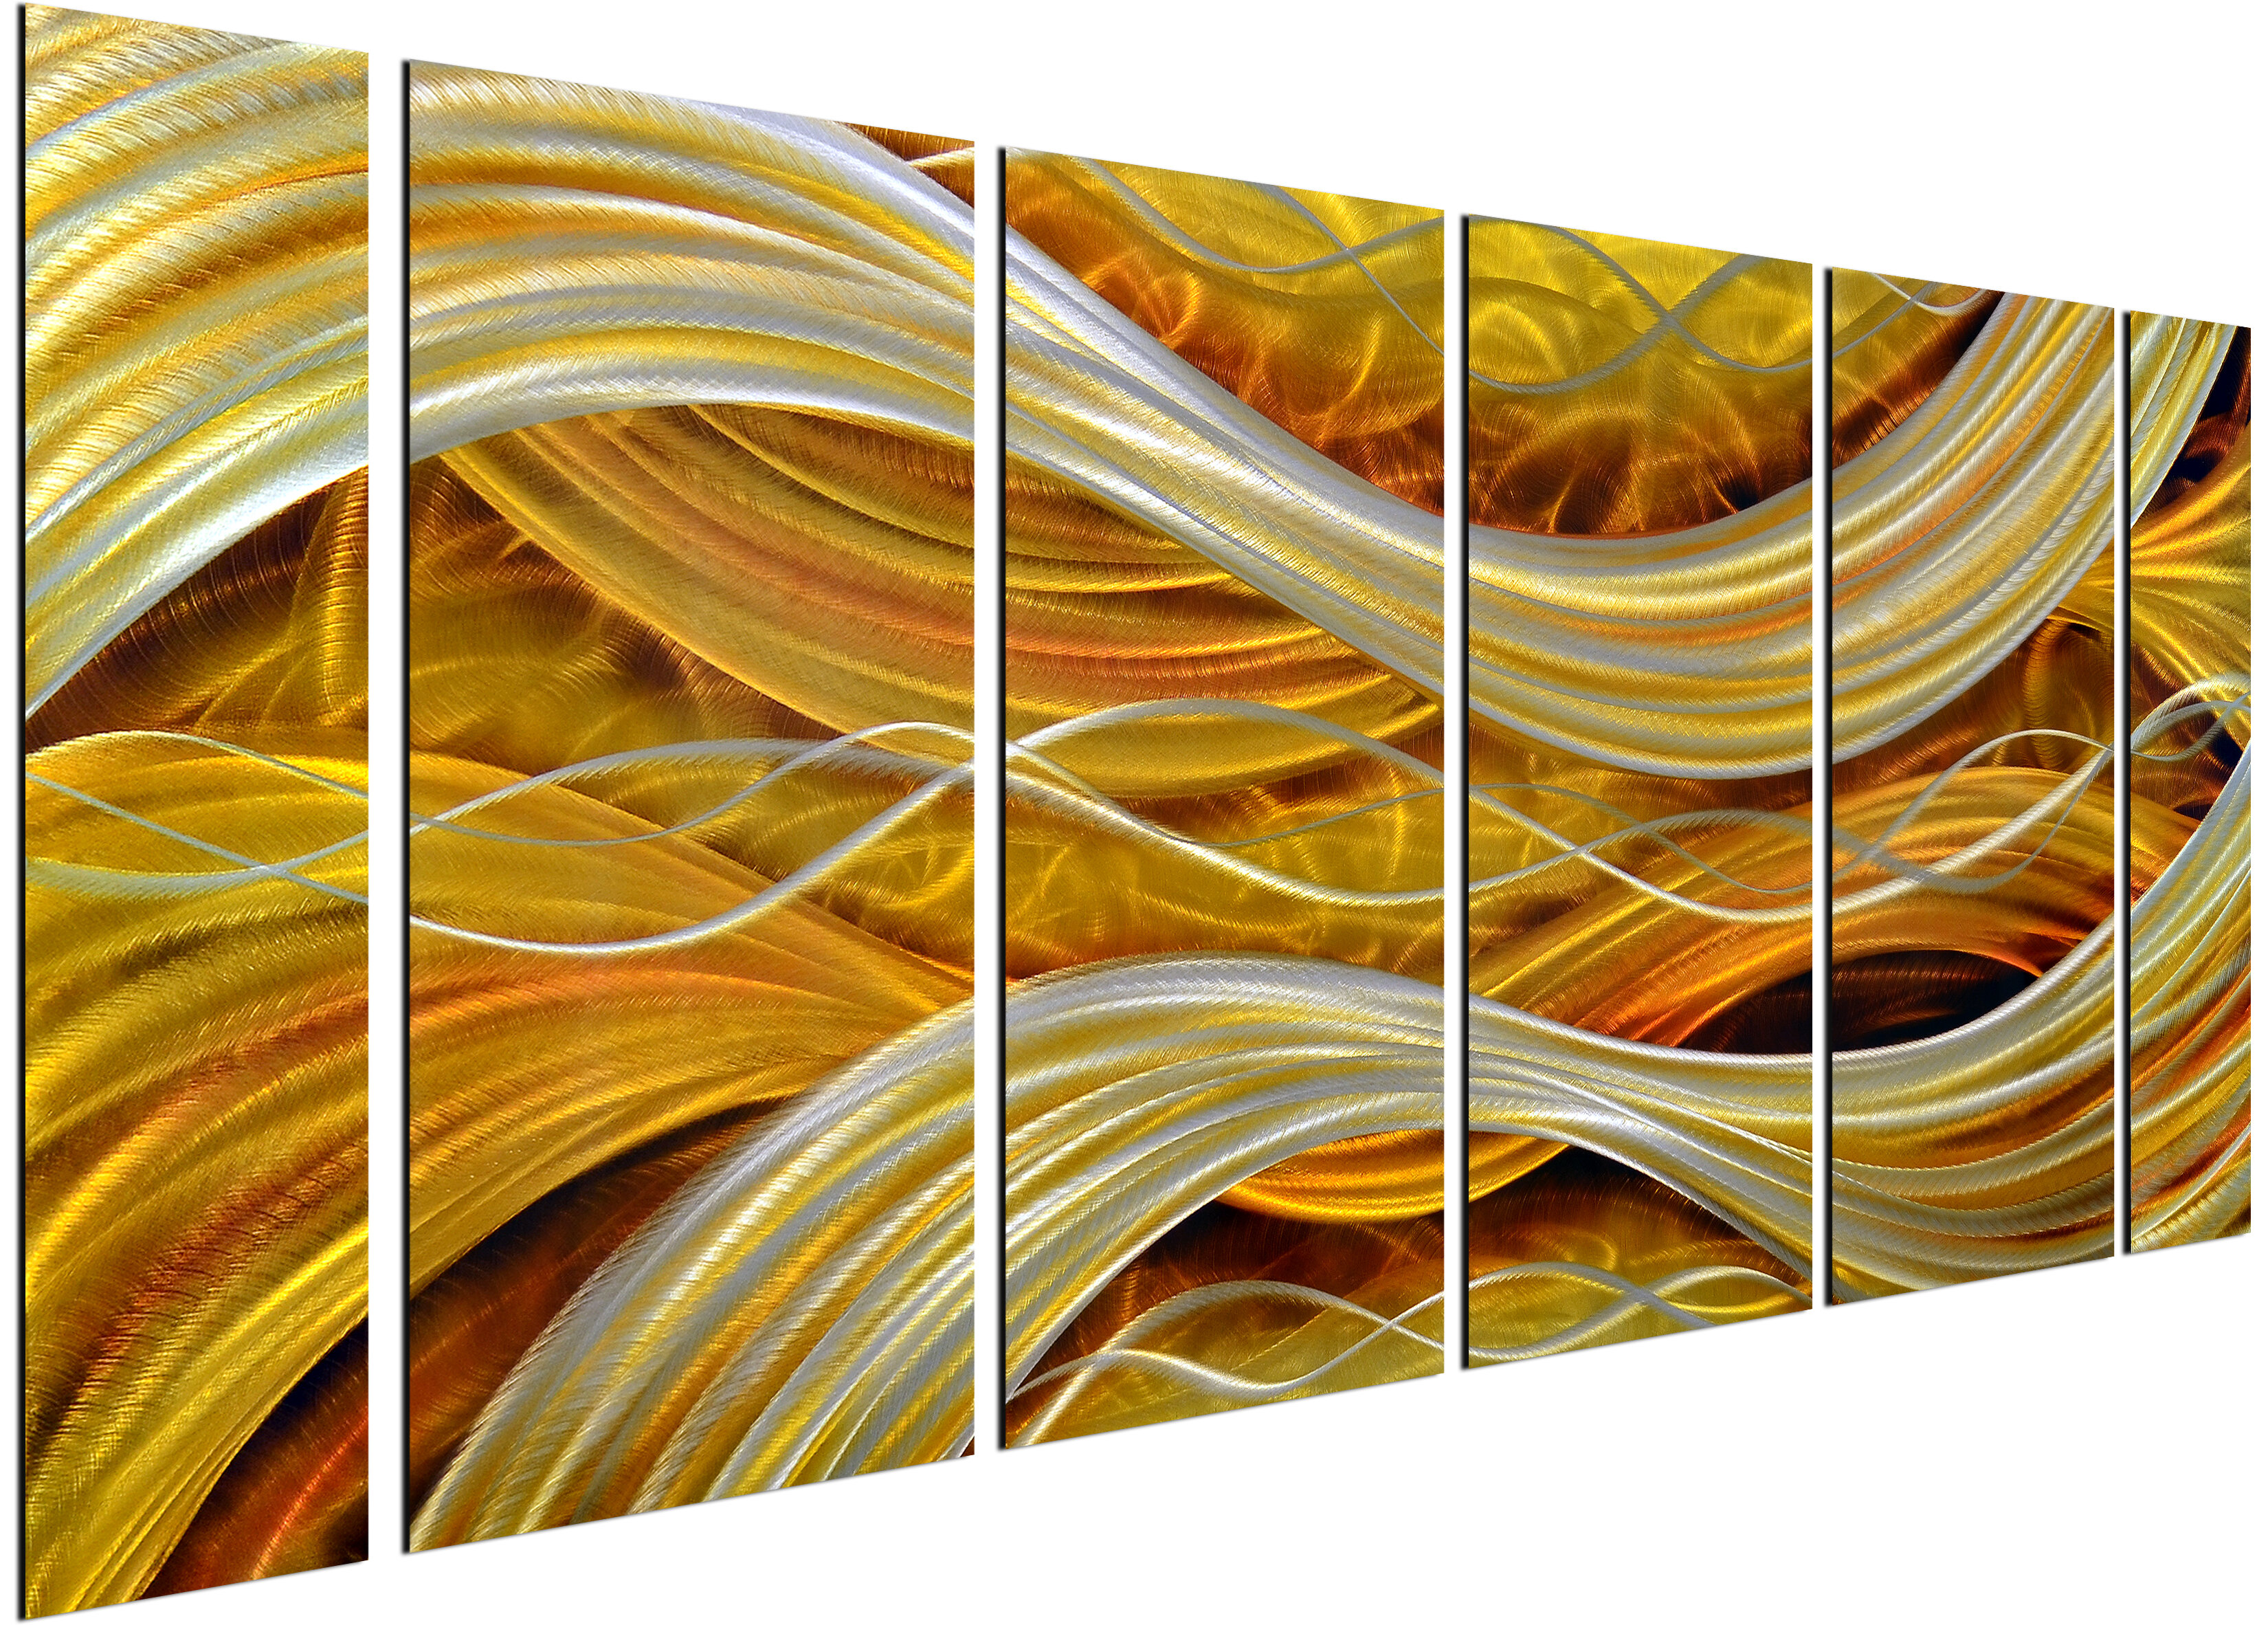 Omax Decor 6 Piece Golden Interwoven Spirals Wall Décor Set ...